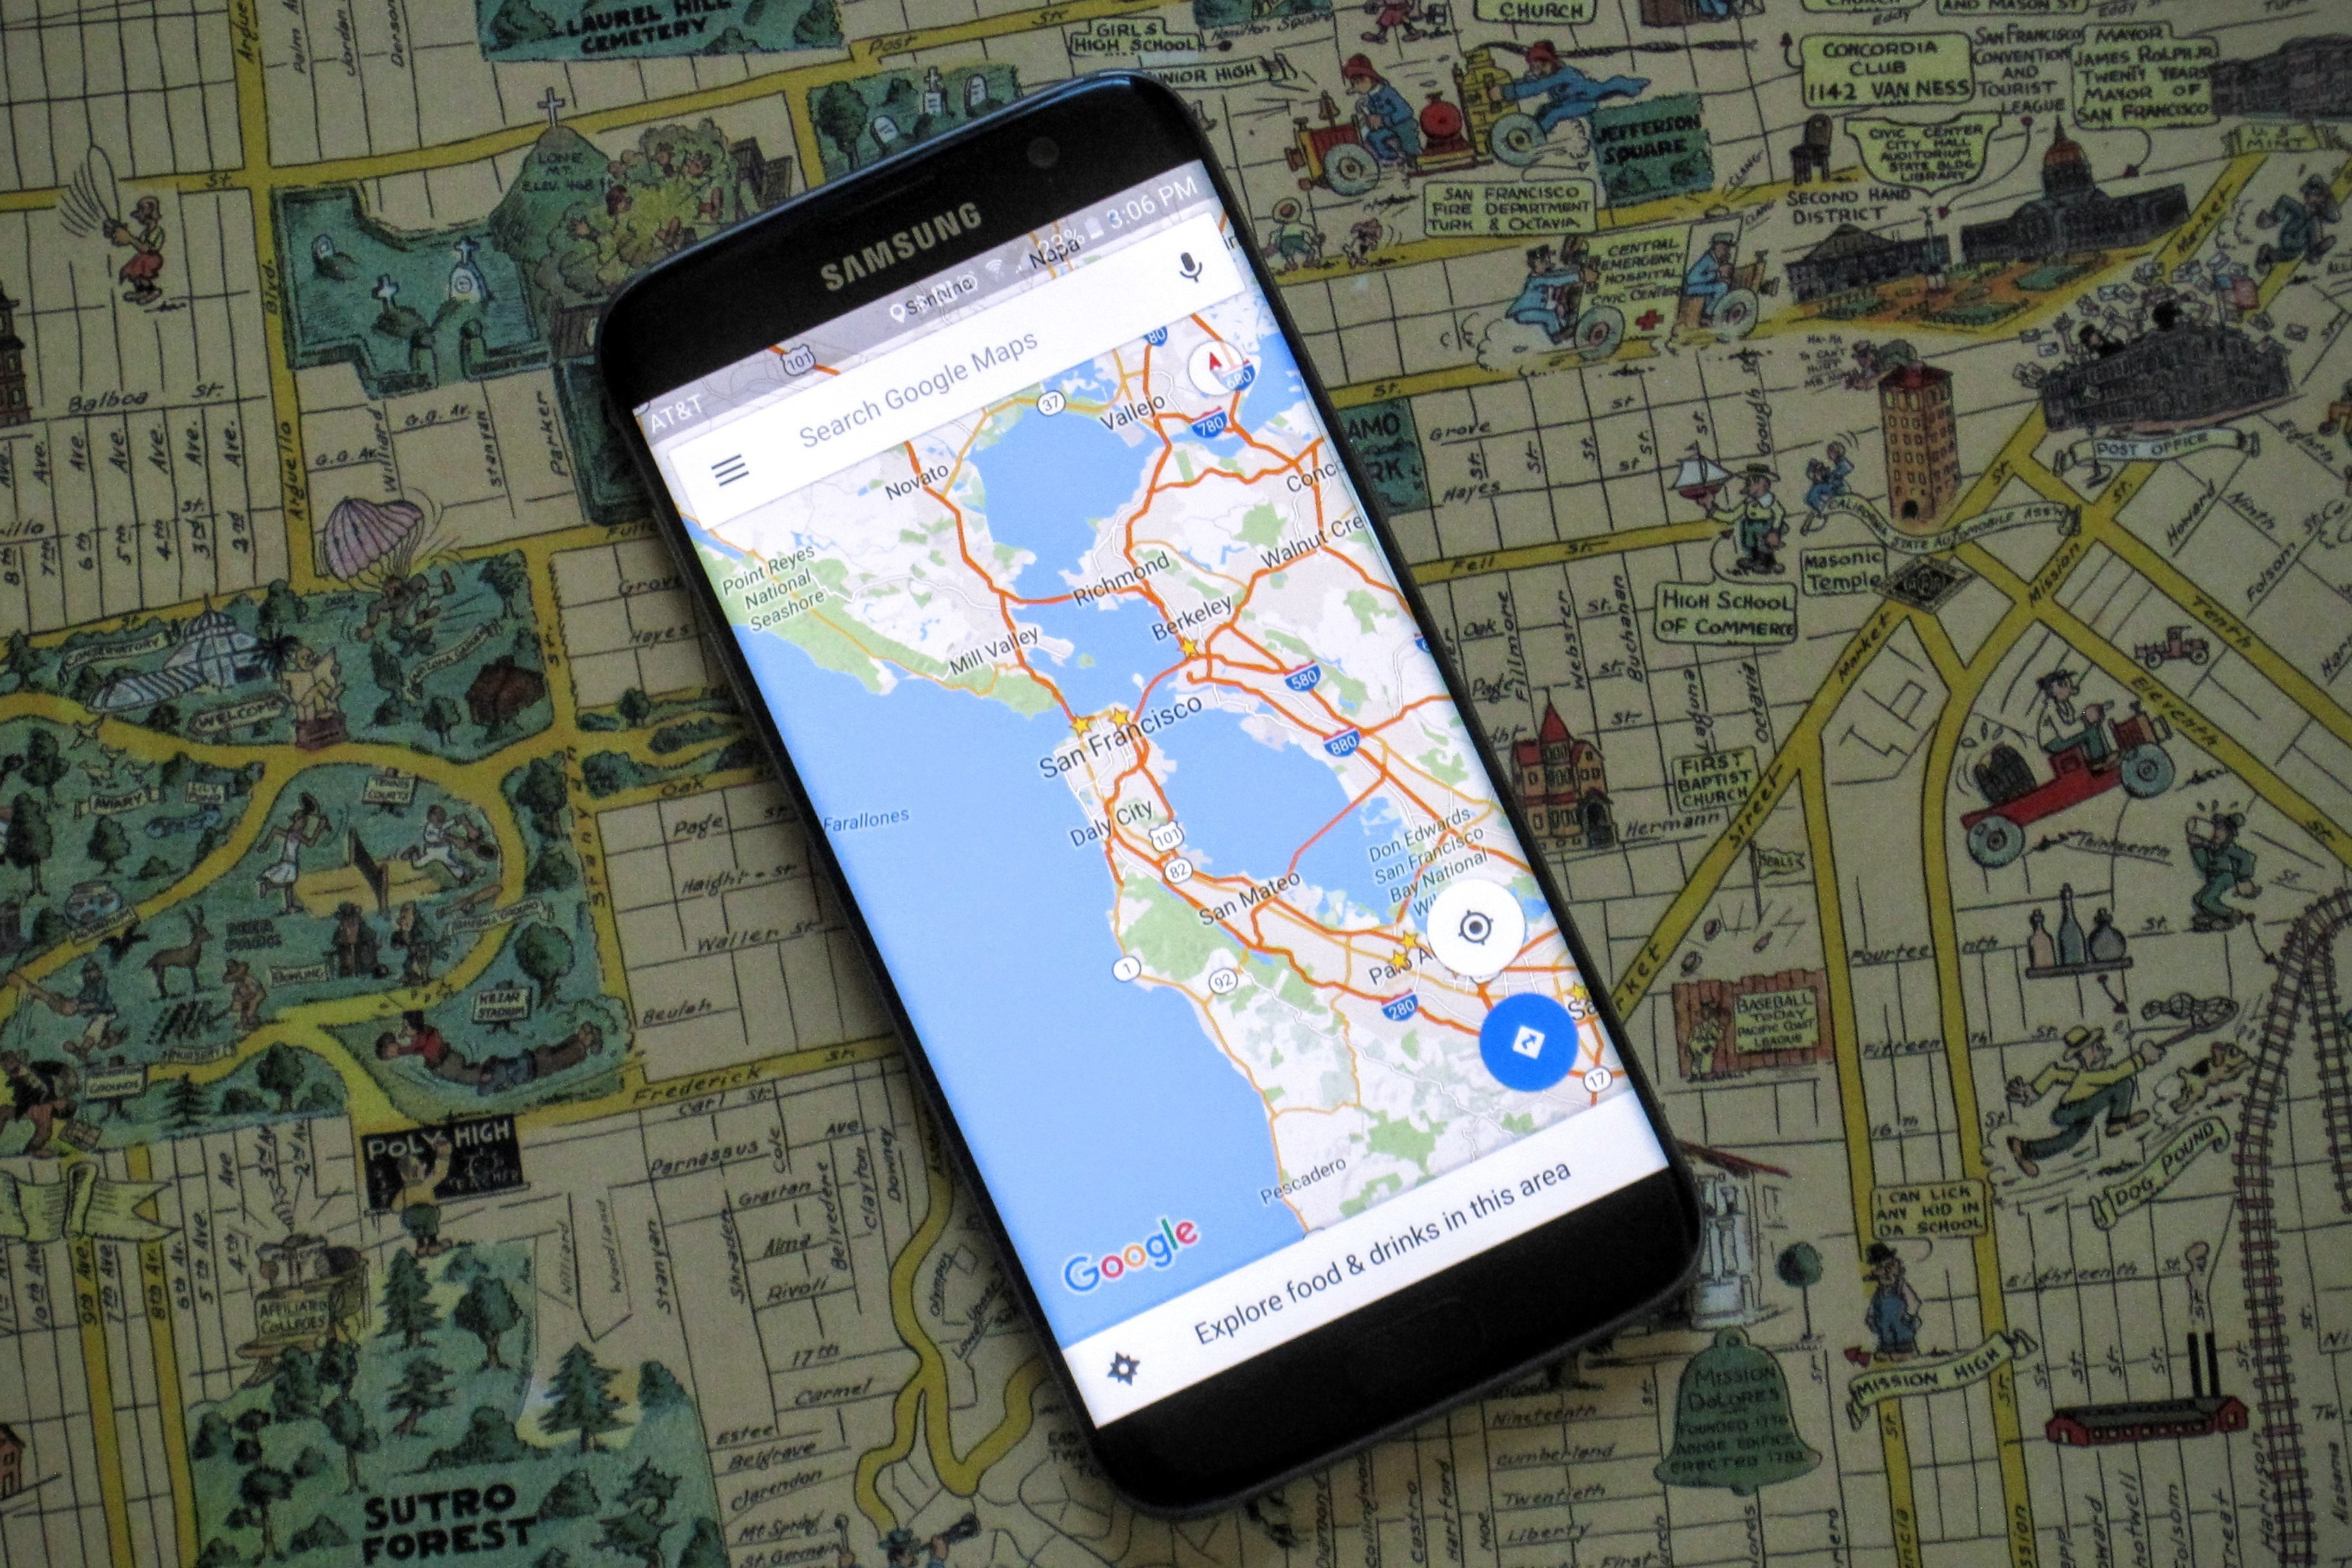 Google Maps New Update Suggests Ideal Time To Leave For A Place on